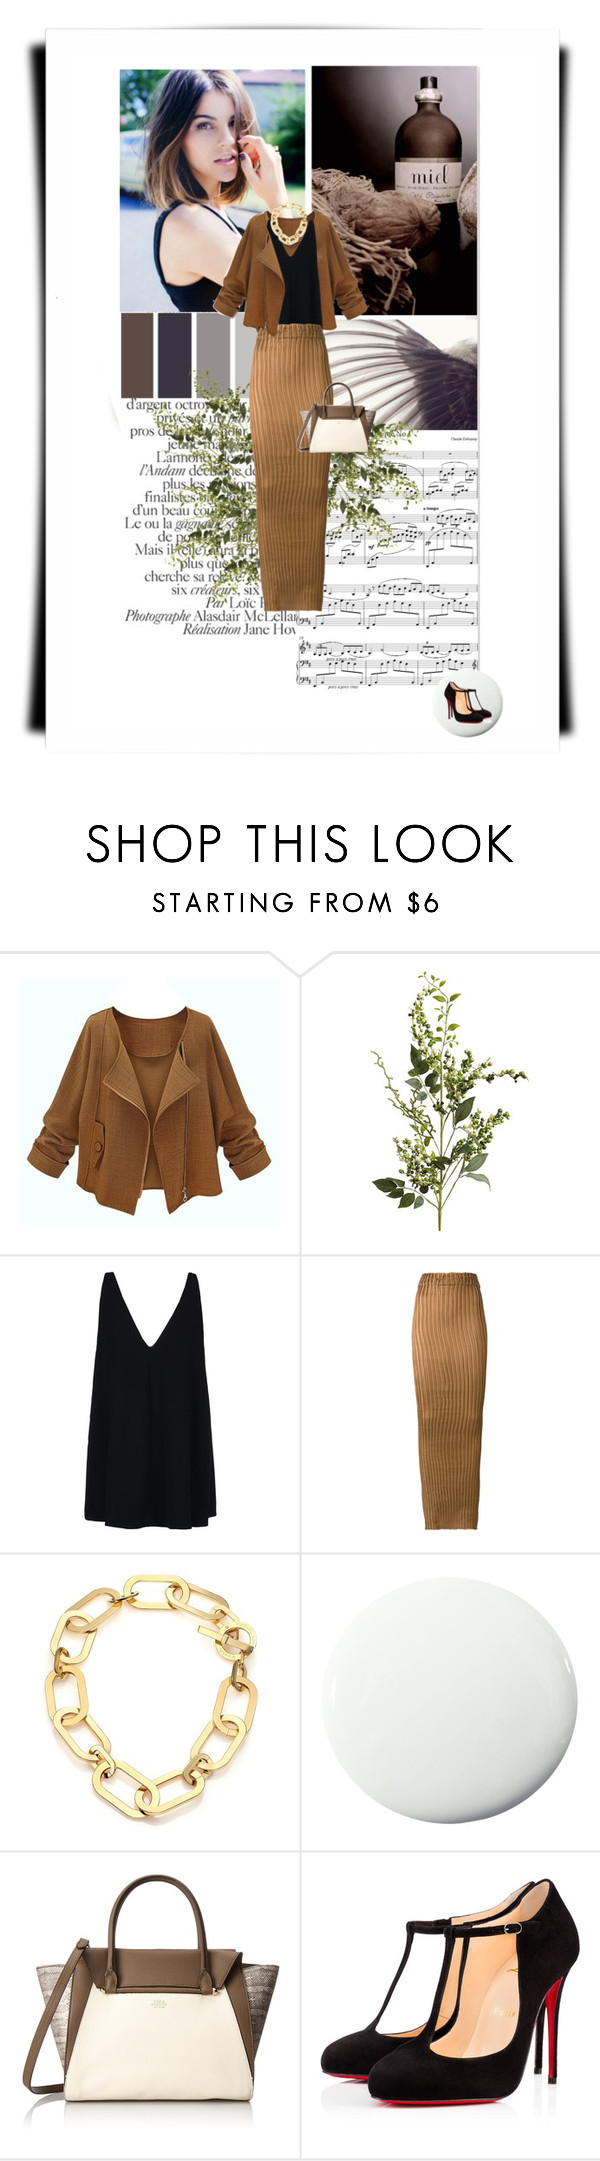 """Elegant in Brown"" by doris-knezevic ❤ liked on Polyvore featuring Beauty Secrets, Seed Design, Pier 1 Imports, STELLA McCARTNEY, Iris van Herpen, Michael Kors, Pure Home, Vince Camuto, Christian Louboutin and women's clothing"